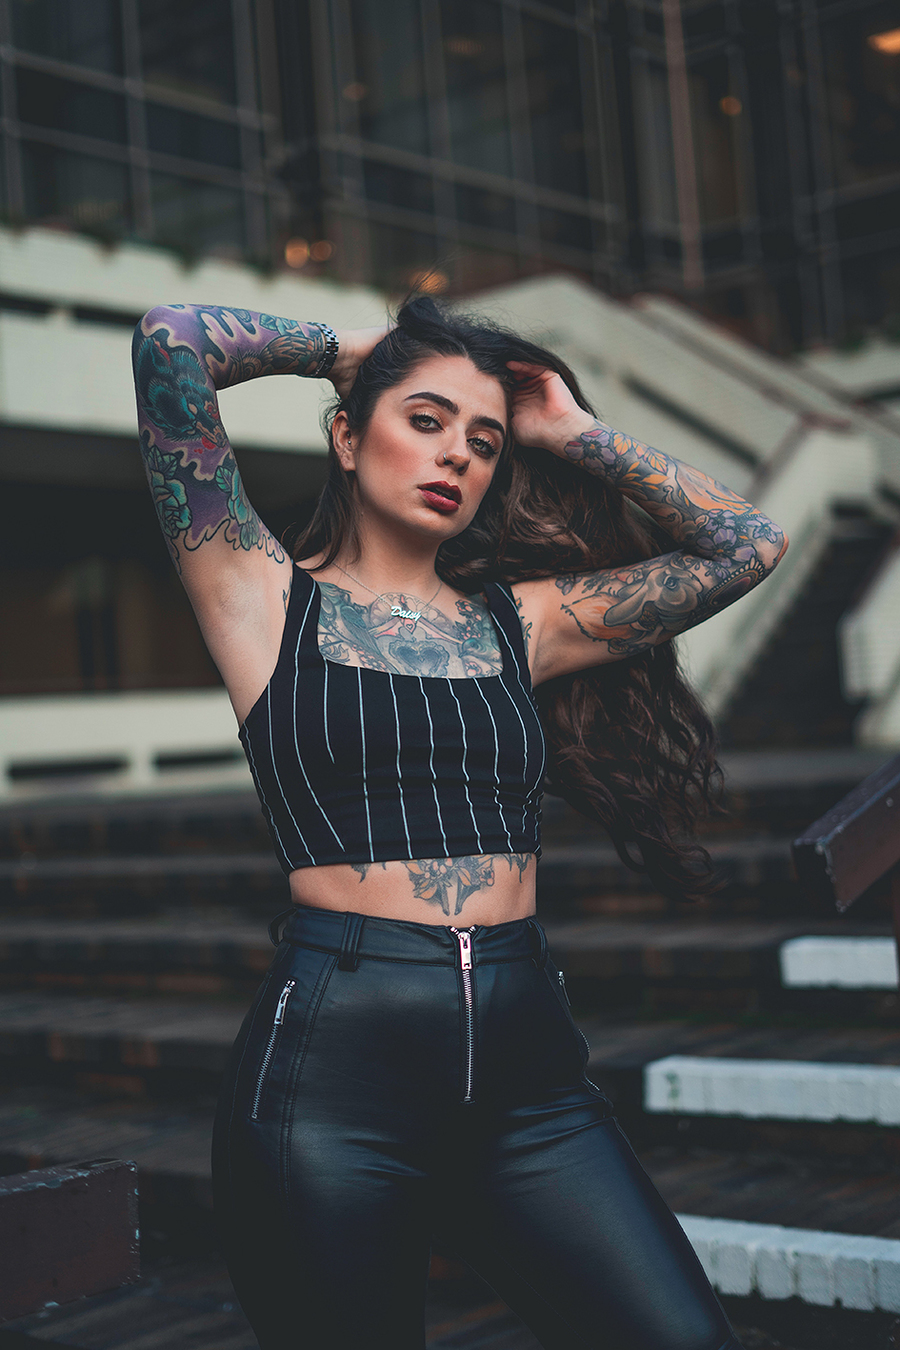 Tattooed Sass / Photography by EmberLeaAshes, Post processing by EmberLeaAshes / Uploaded 14th January 2020 @ 03:38 PM